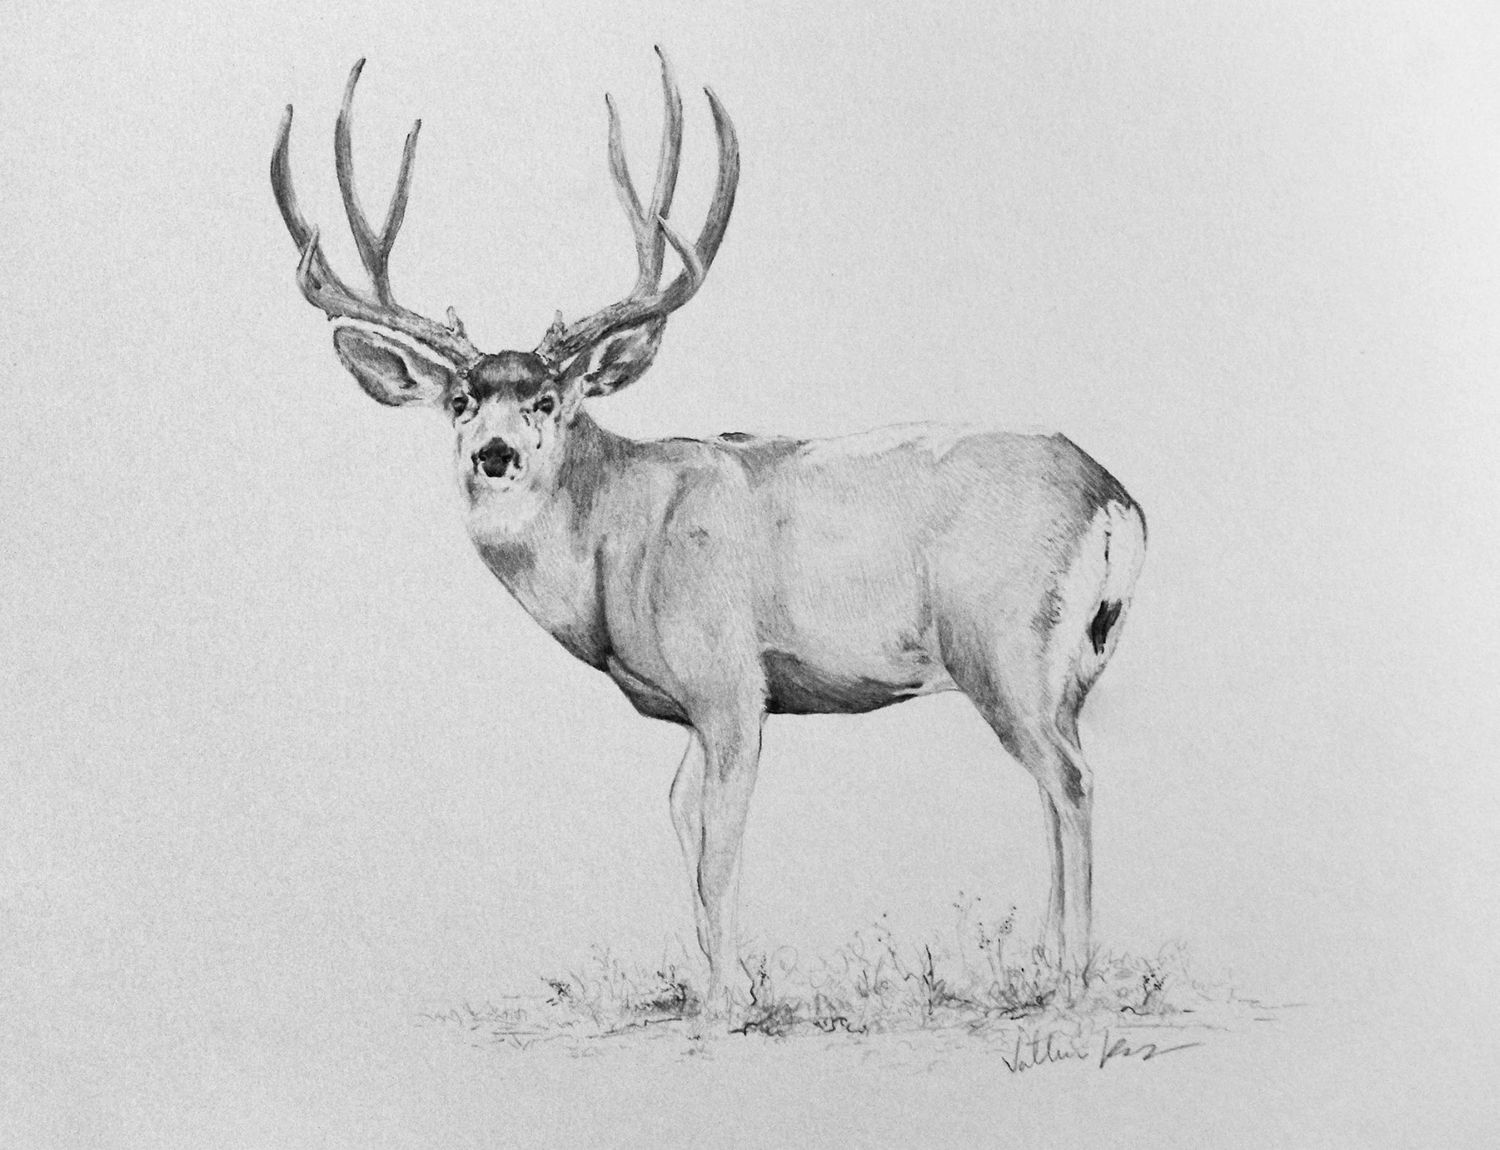 9x12 Inches Pencil Drawing of a Mule Deer Buck